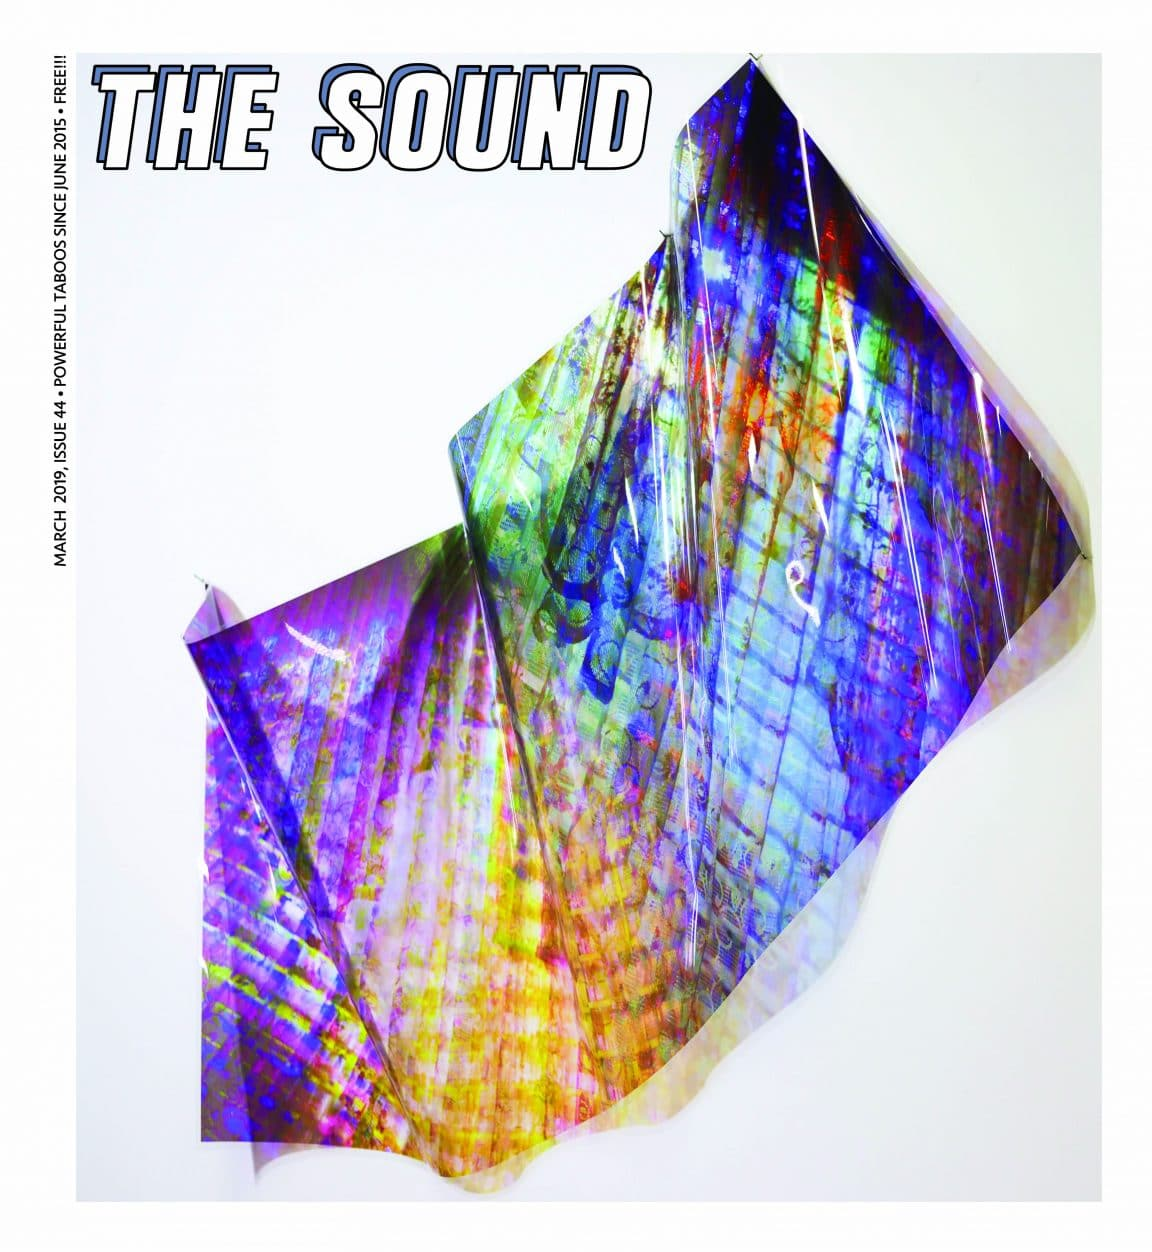 The Sound Mag Cover March 2019